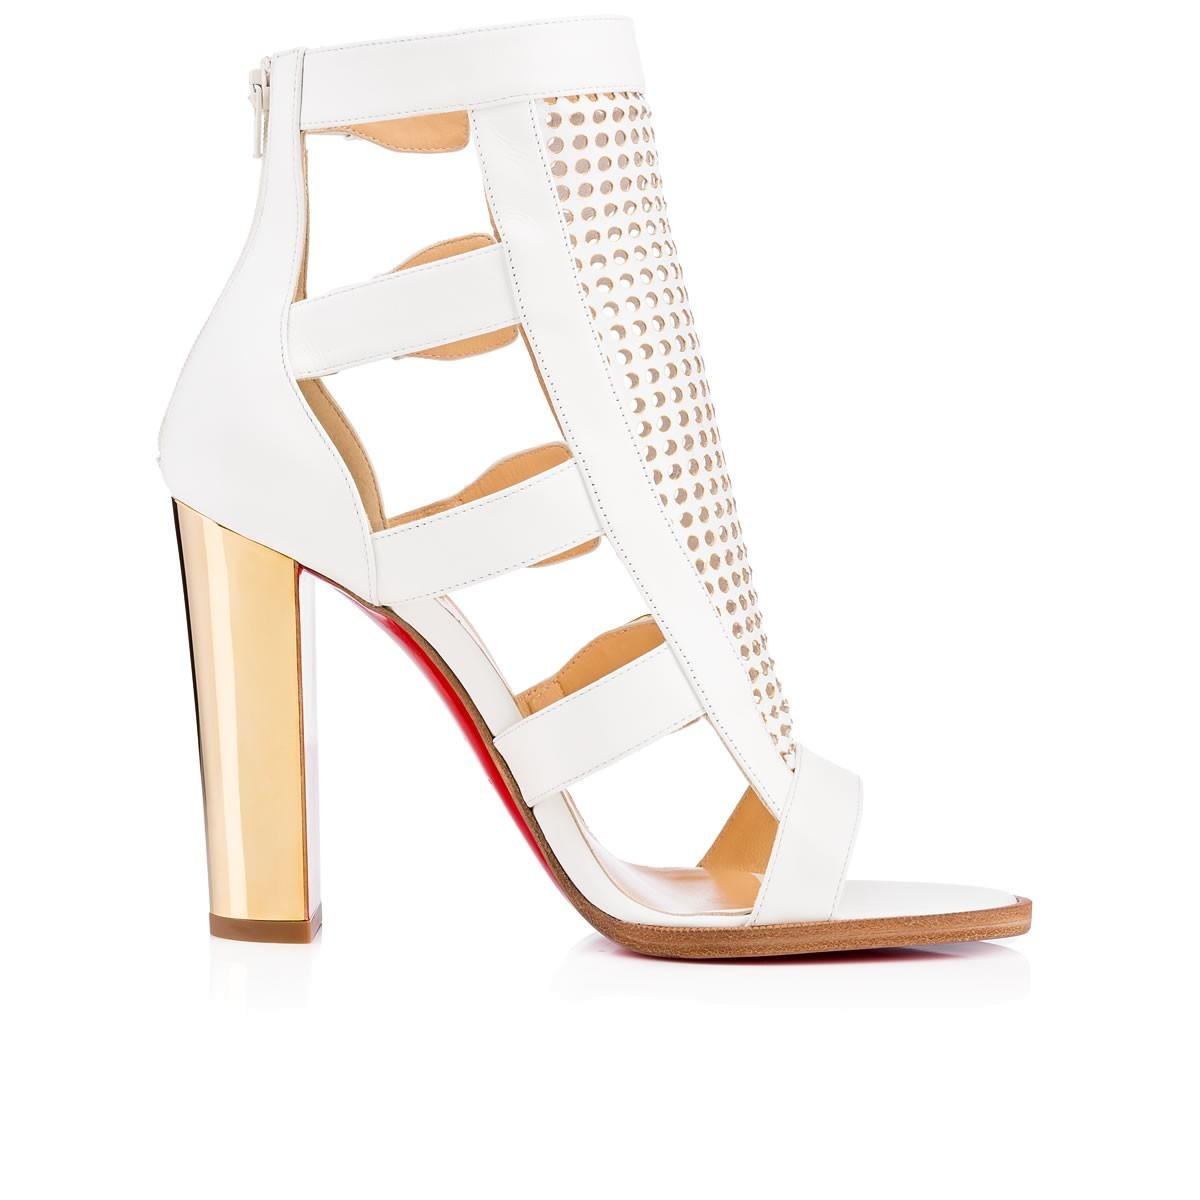 Christian Perforated Louboutin White New Fencing Perforated Christian Red Sole 41 Sandals Size US 11 Regular (M, B) 6142ef